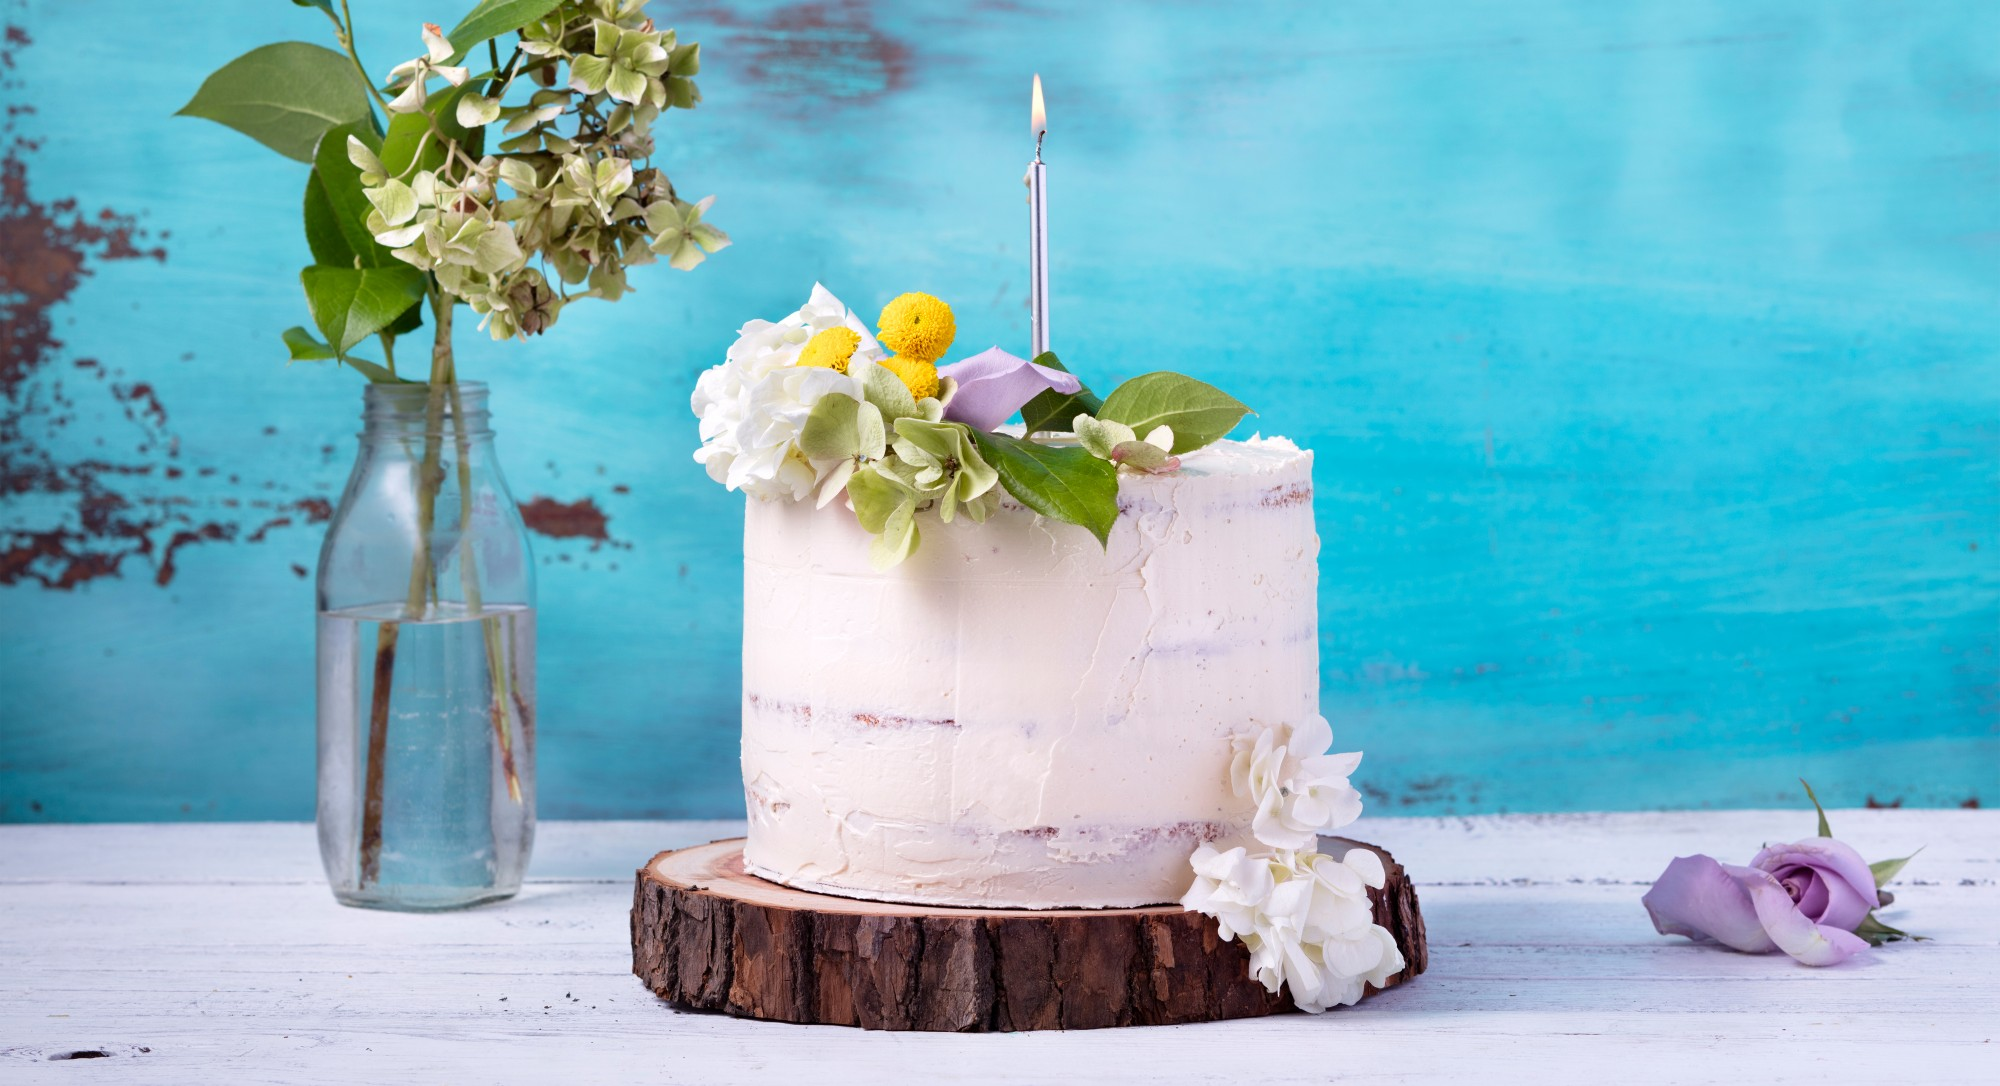 Our First Birthday w/ Gluten-Free Coconut Cake - Thrive Market